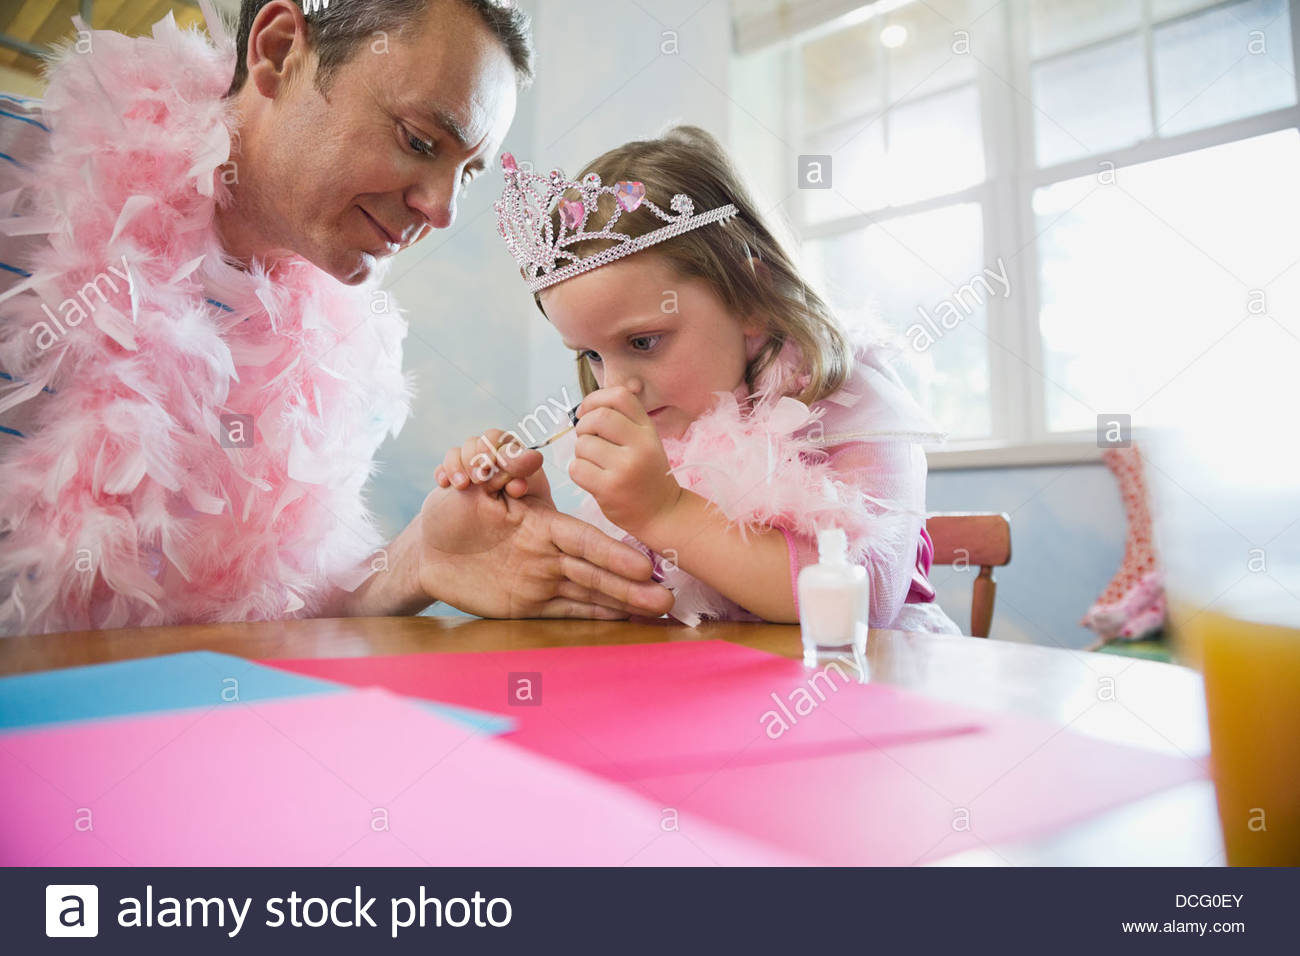 Little girl painting fathers fingernails at table - Stock Image